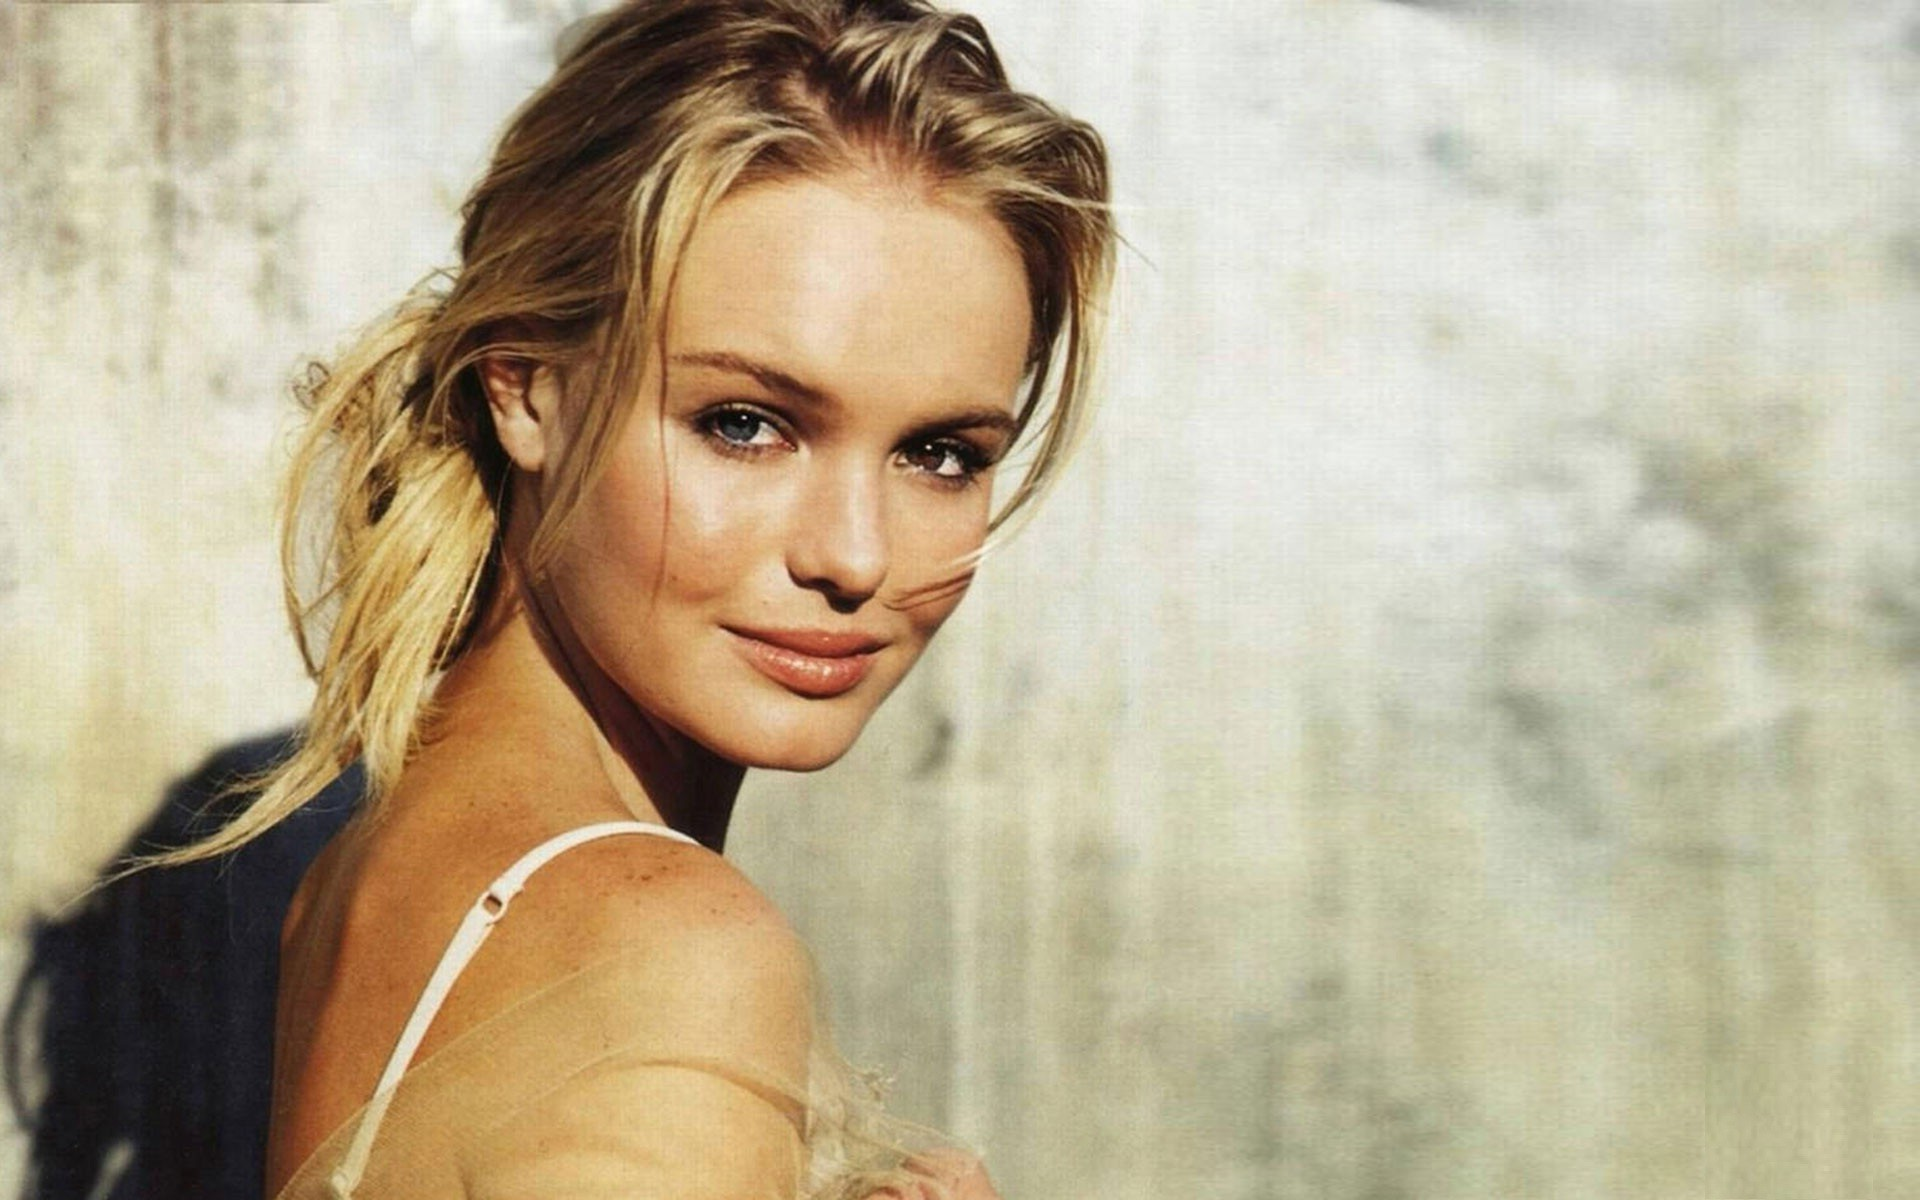 Kate bosworth wallpapers high resolution and quality download - High resolution wallpaper celebrity ...